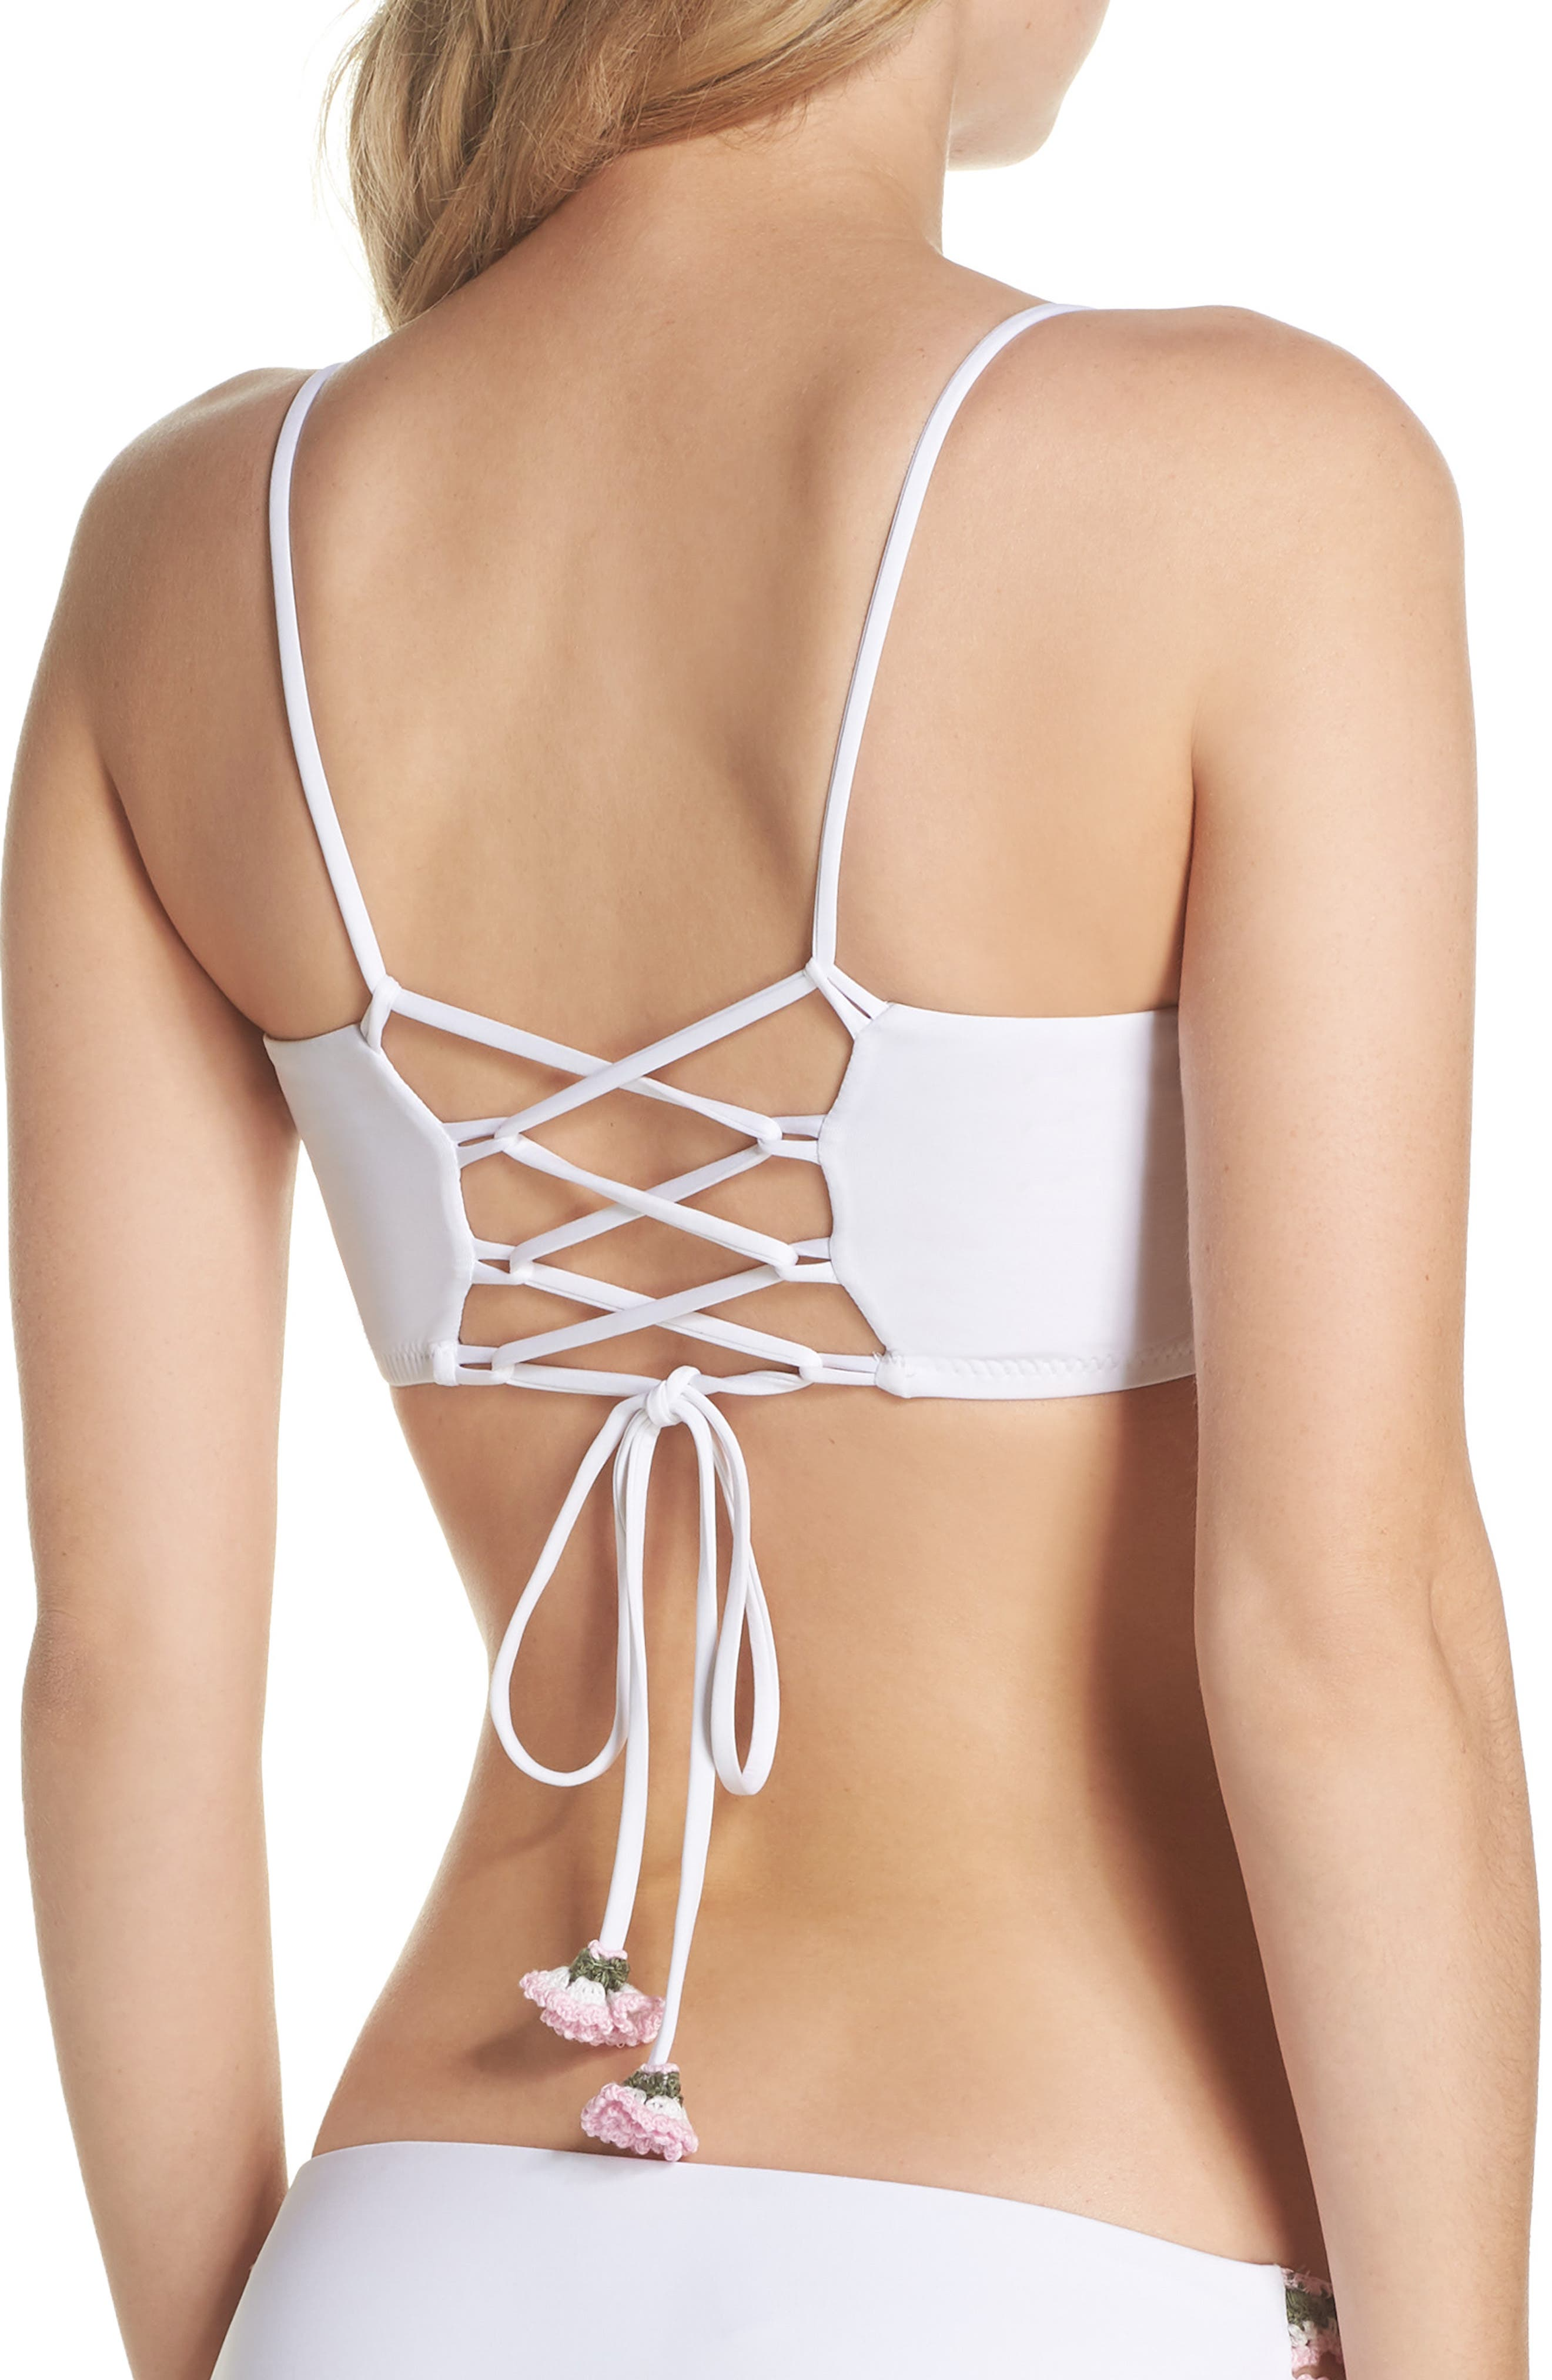 Medina Bandeau Bikini Top,                             Alternate thumbnail 2, color,                             100